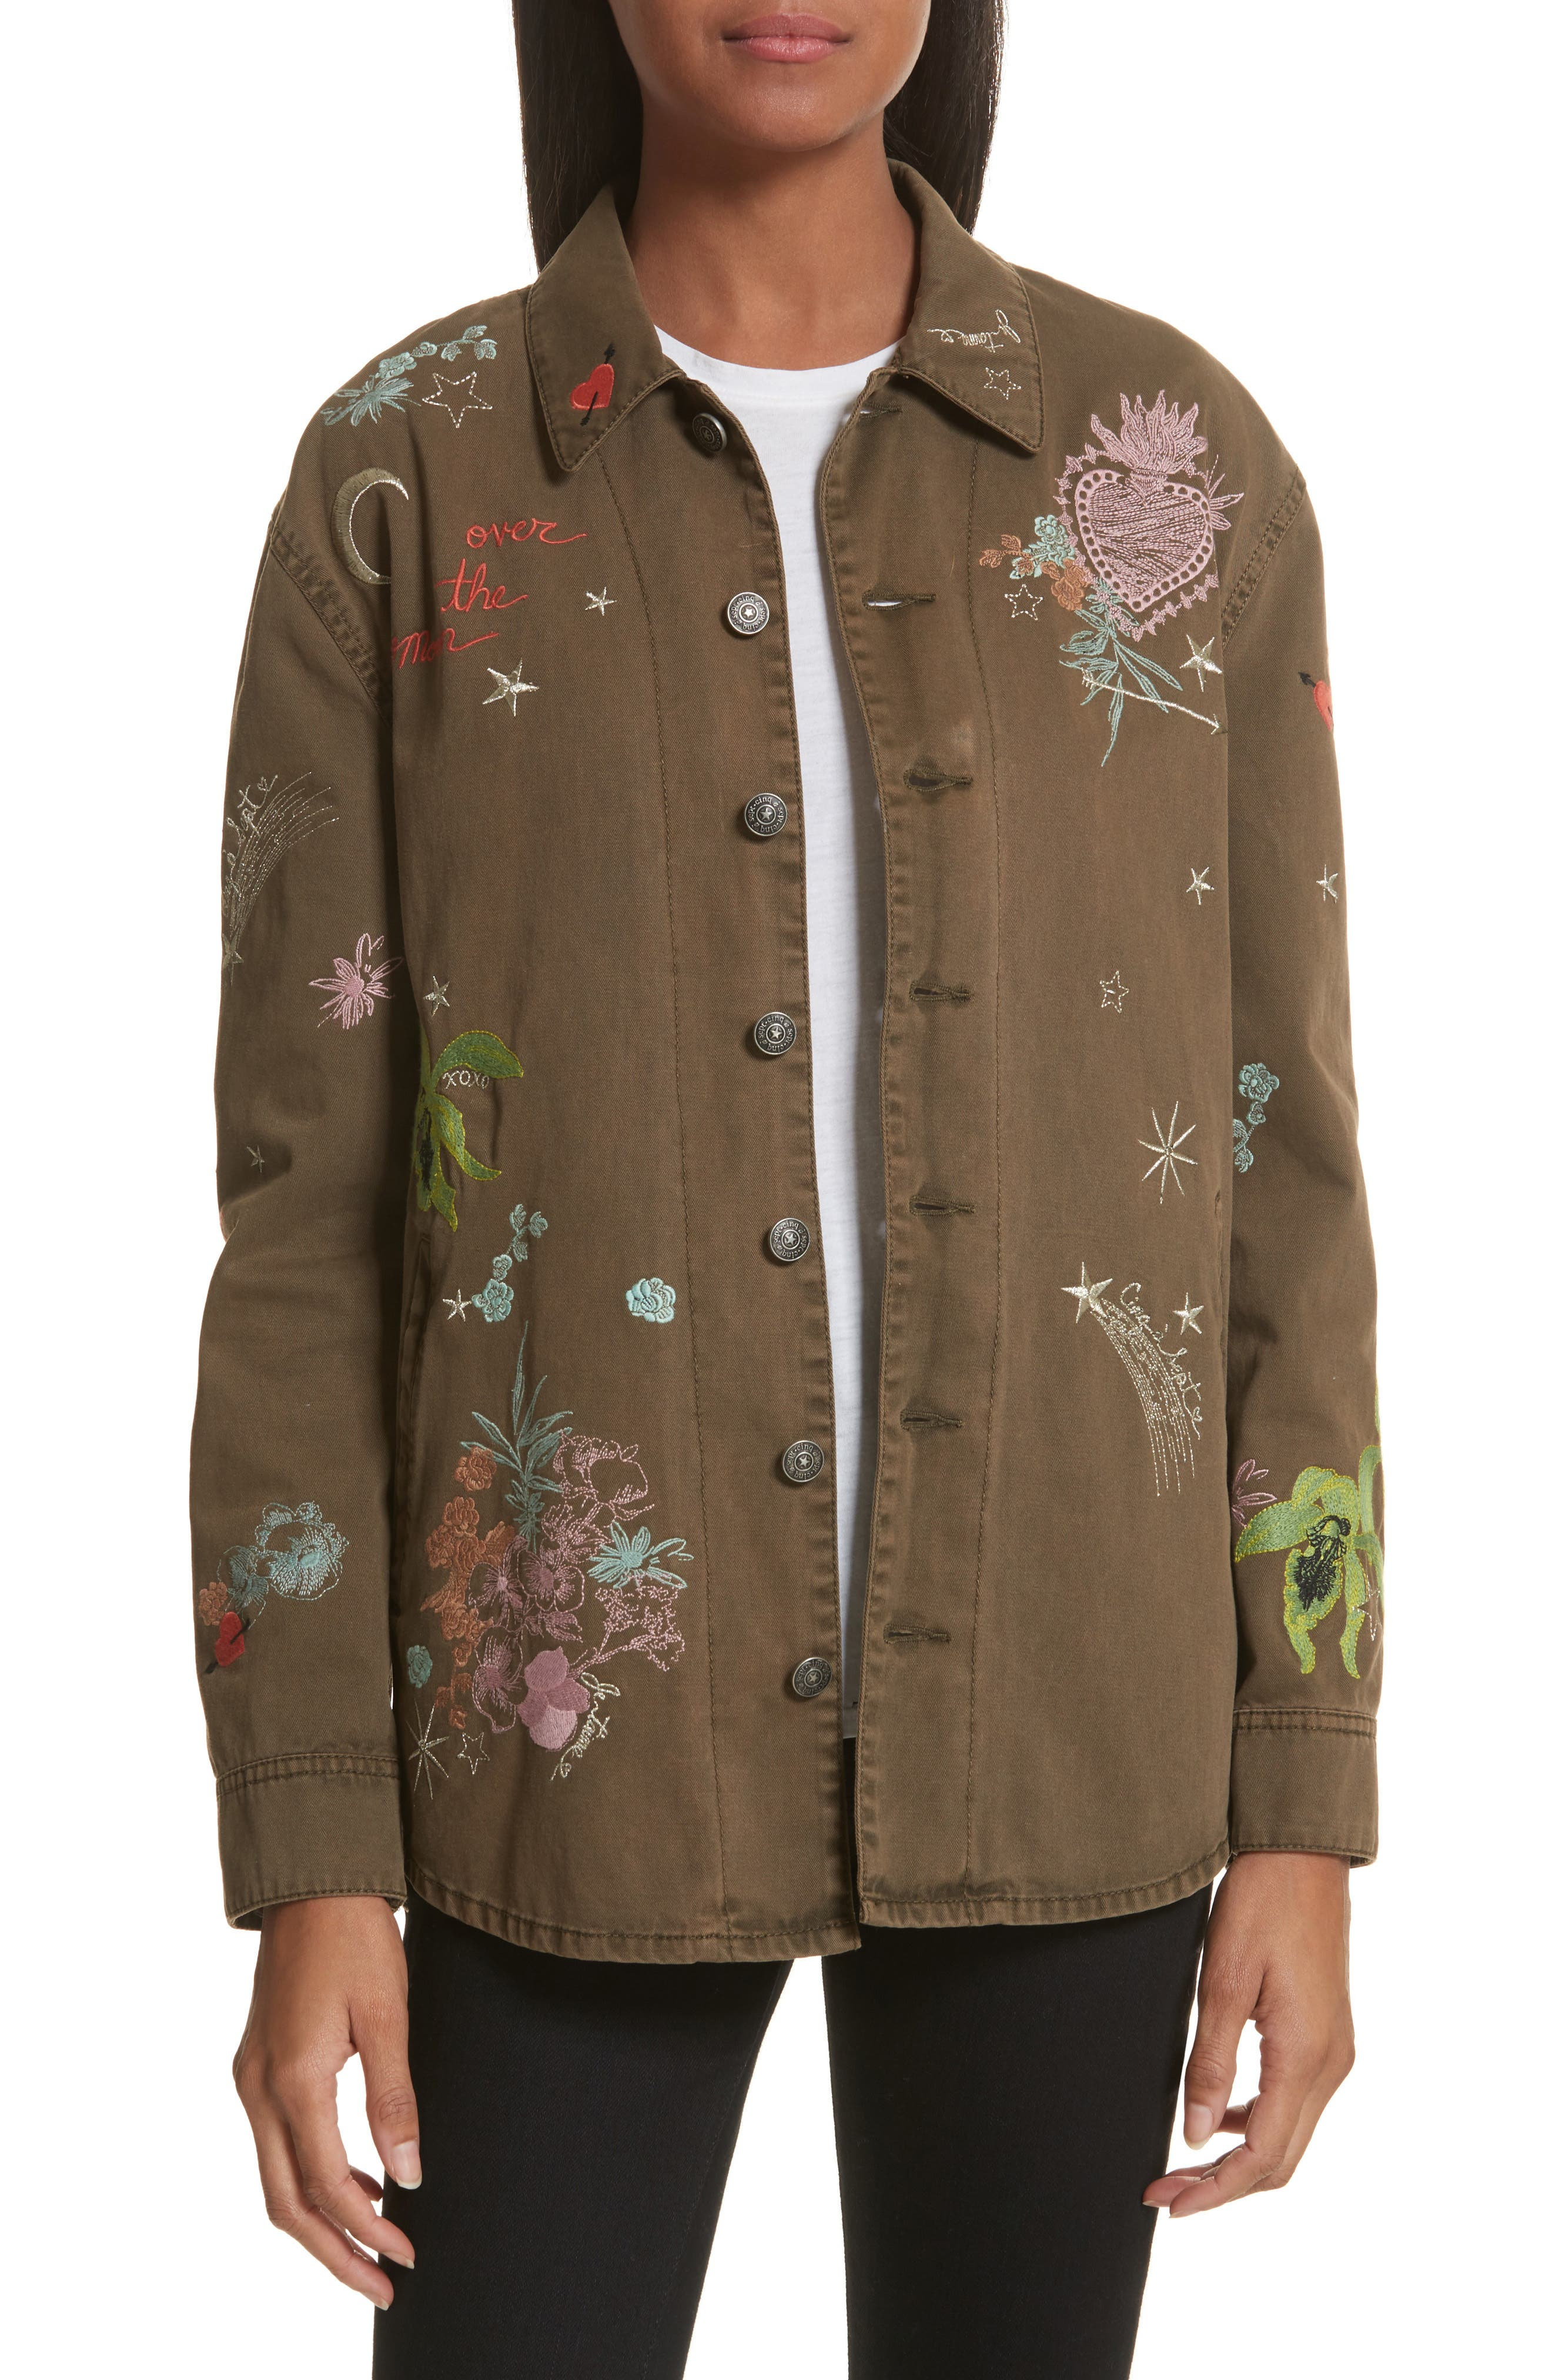 Cinq à Sept Whimsical Canyon Embroidered Jacket